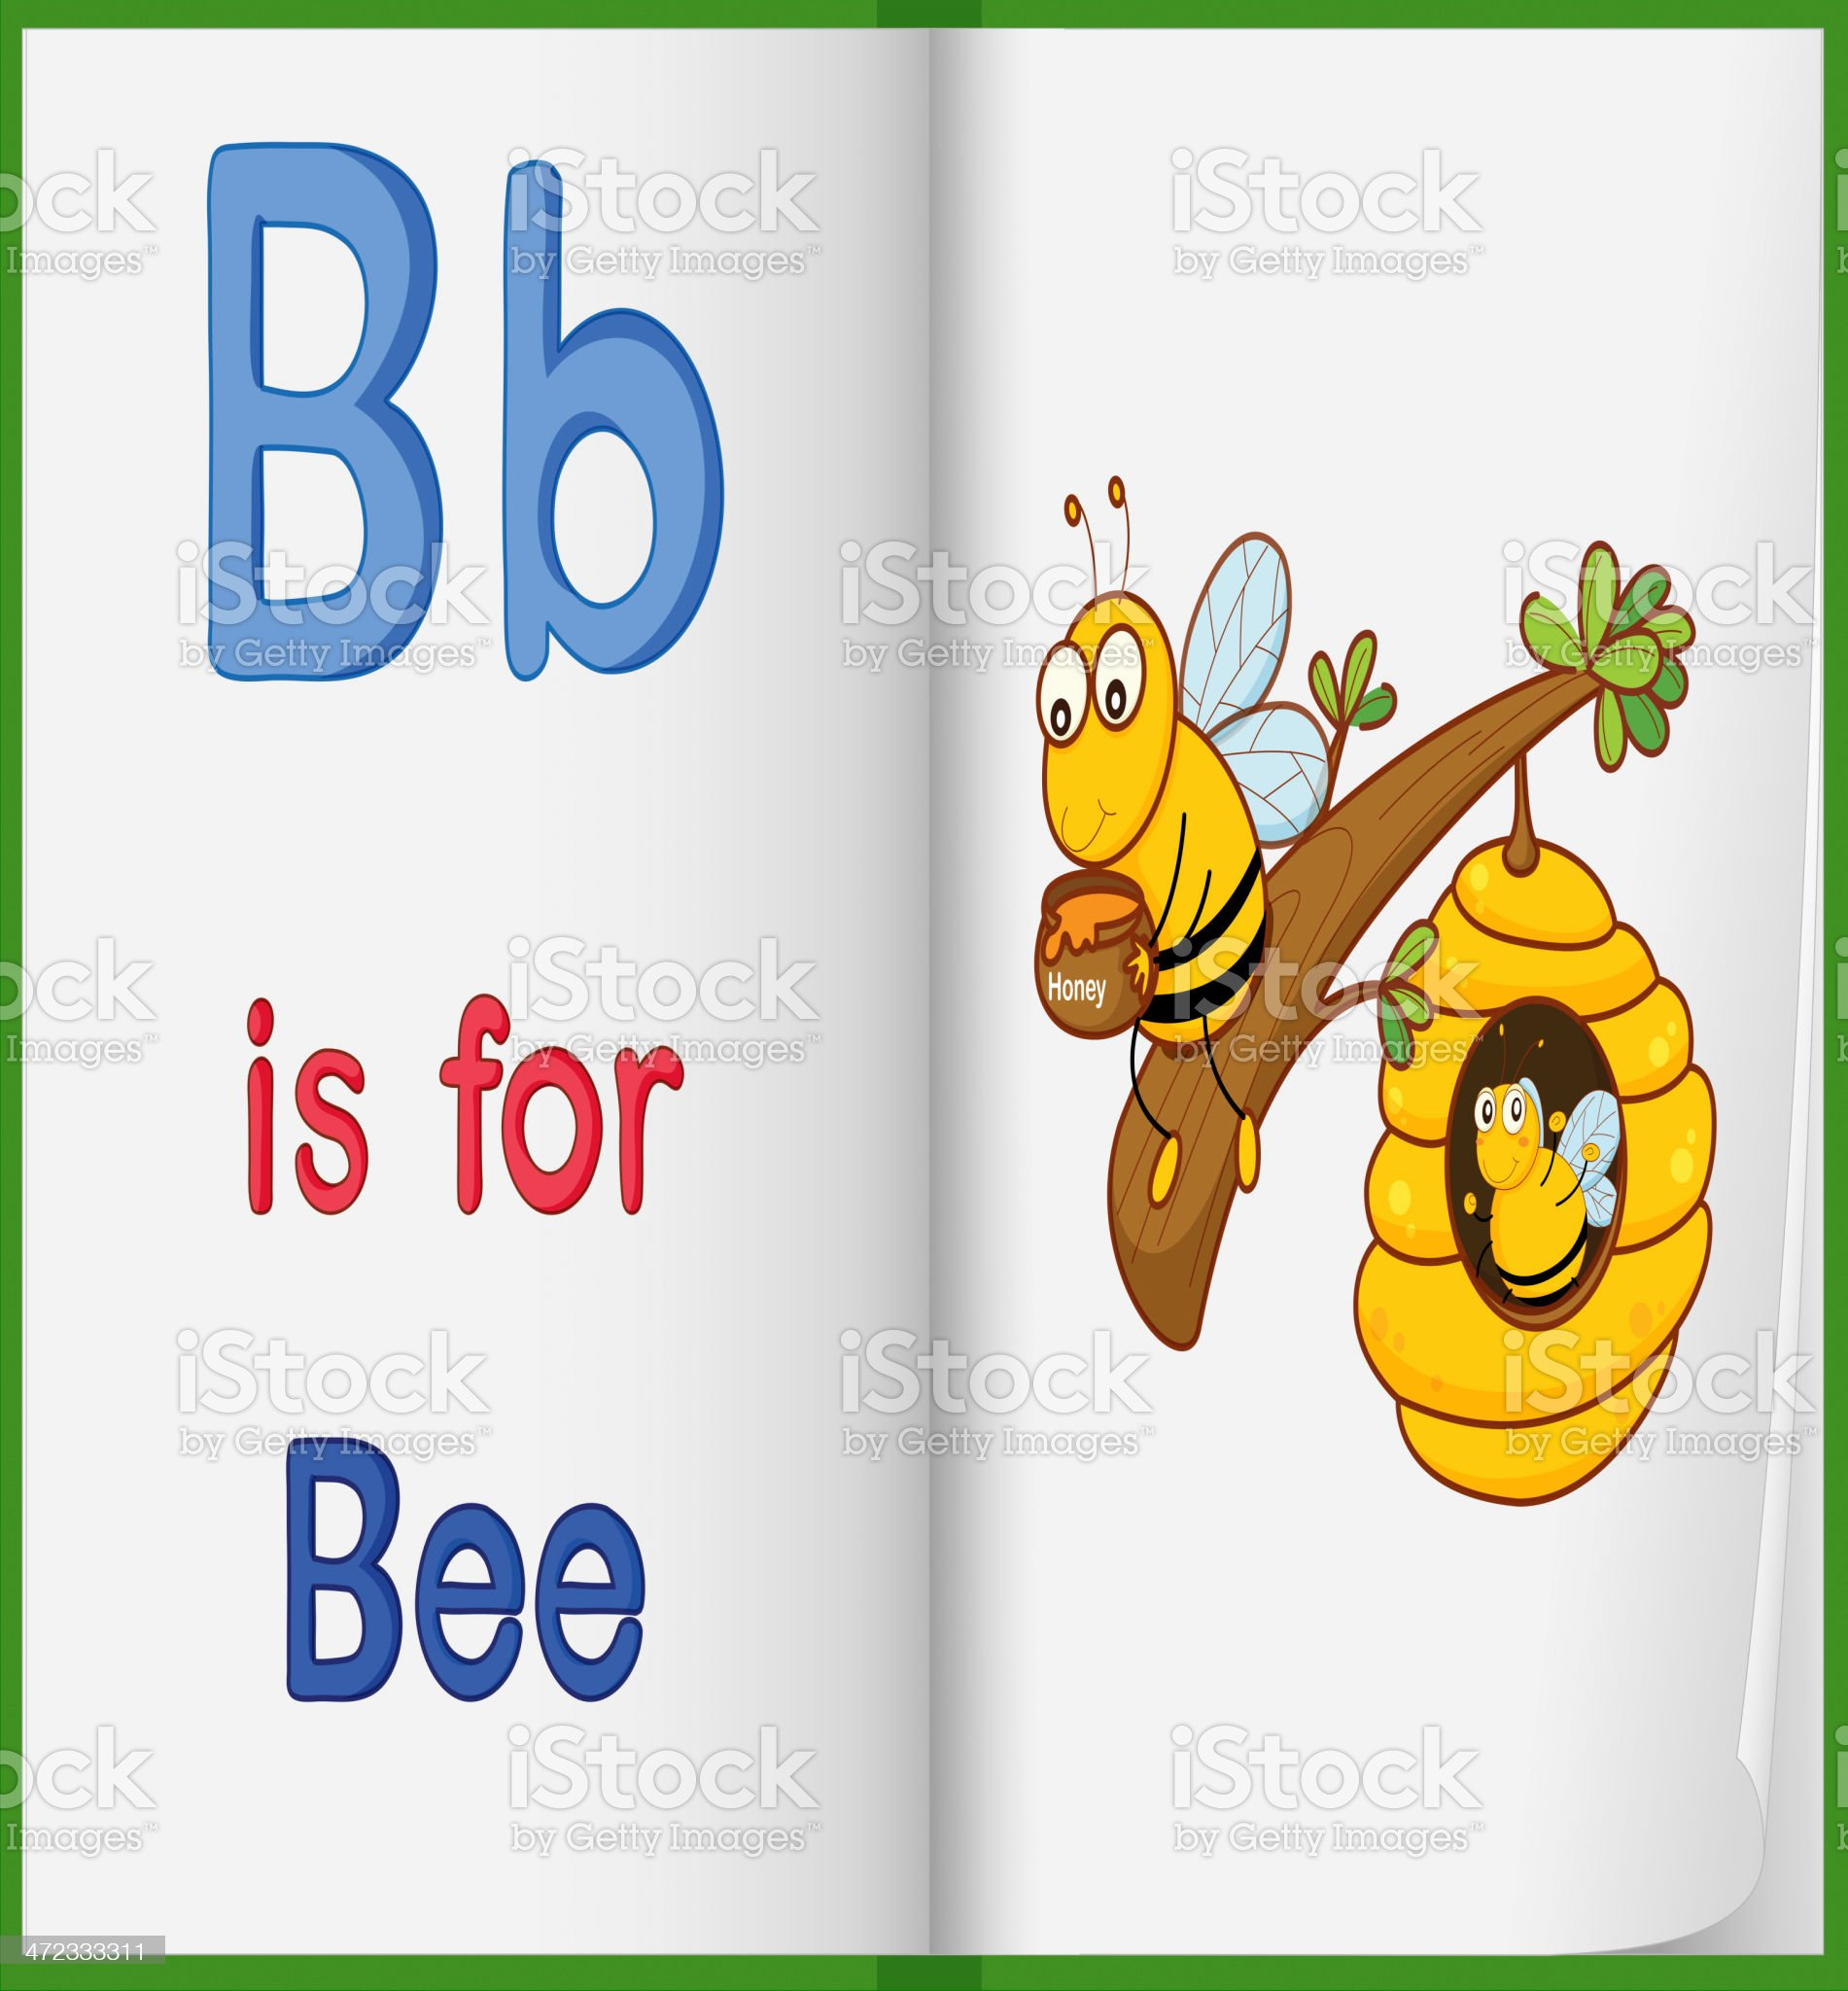 Picture of bee in a book royalty-free stock vector art